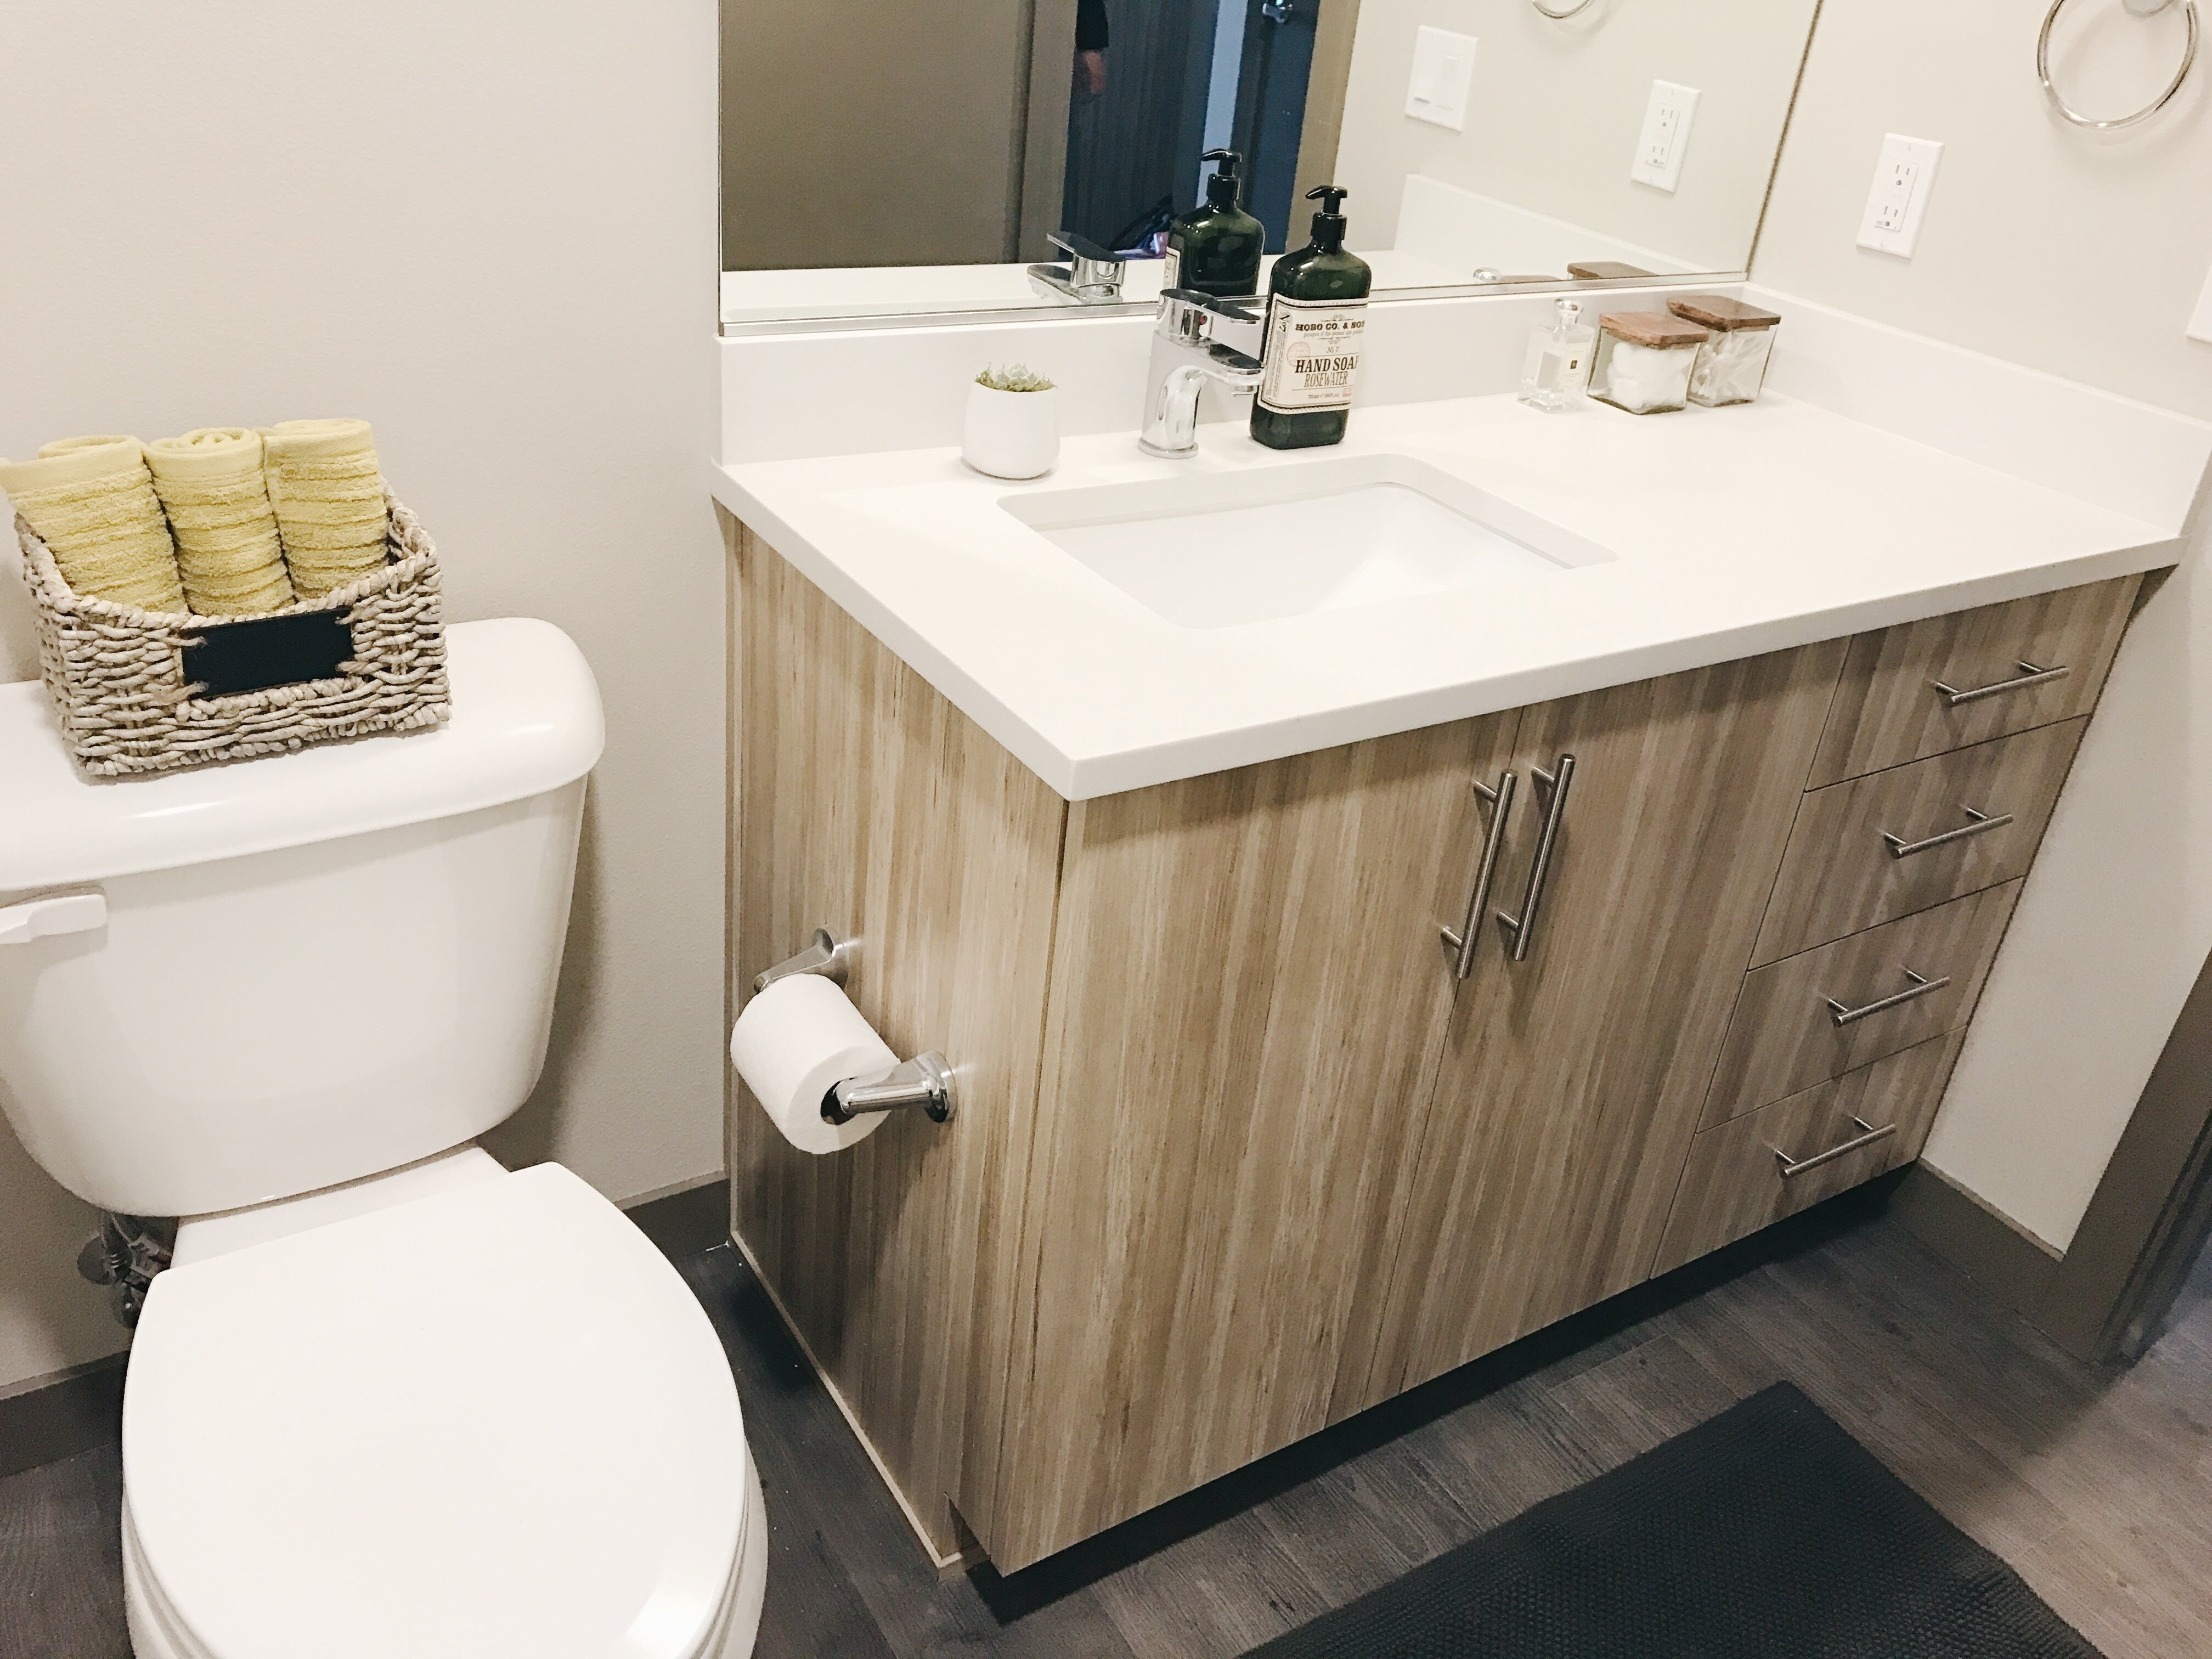 Solid Cultured Marble Bathroom Counter Tops at Bridgetown Lofts, Portland, OR